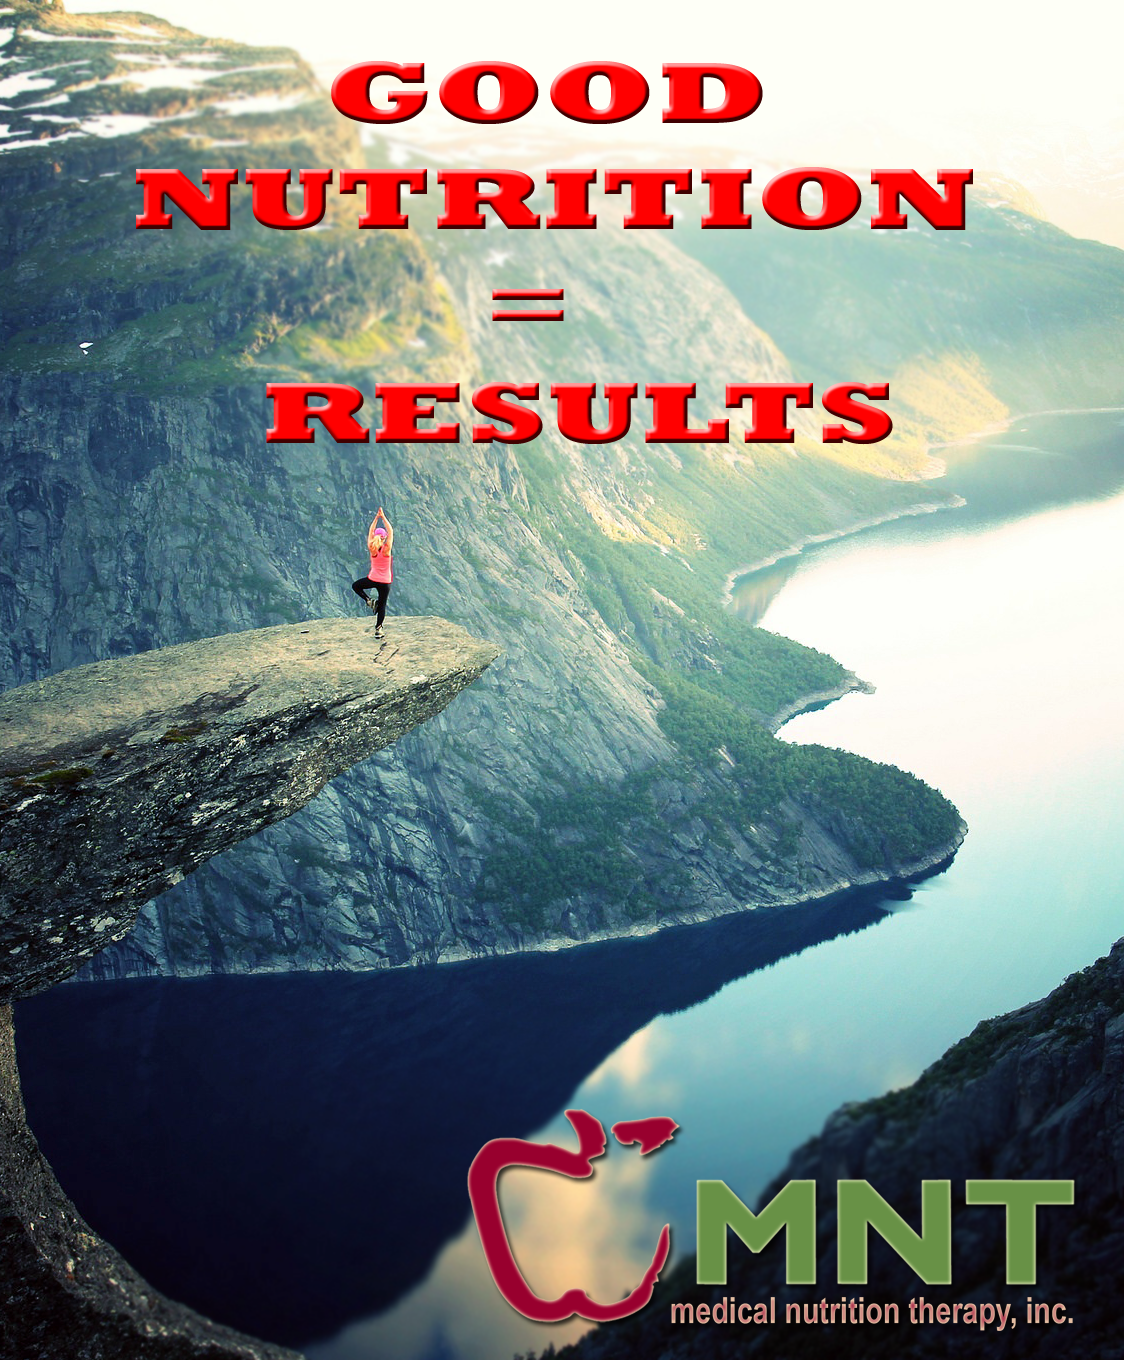 Good Nutrition Equals Results Nutritional Therapy Nutrition Medical